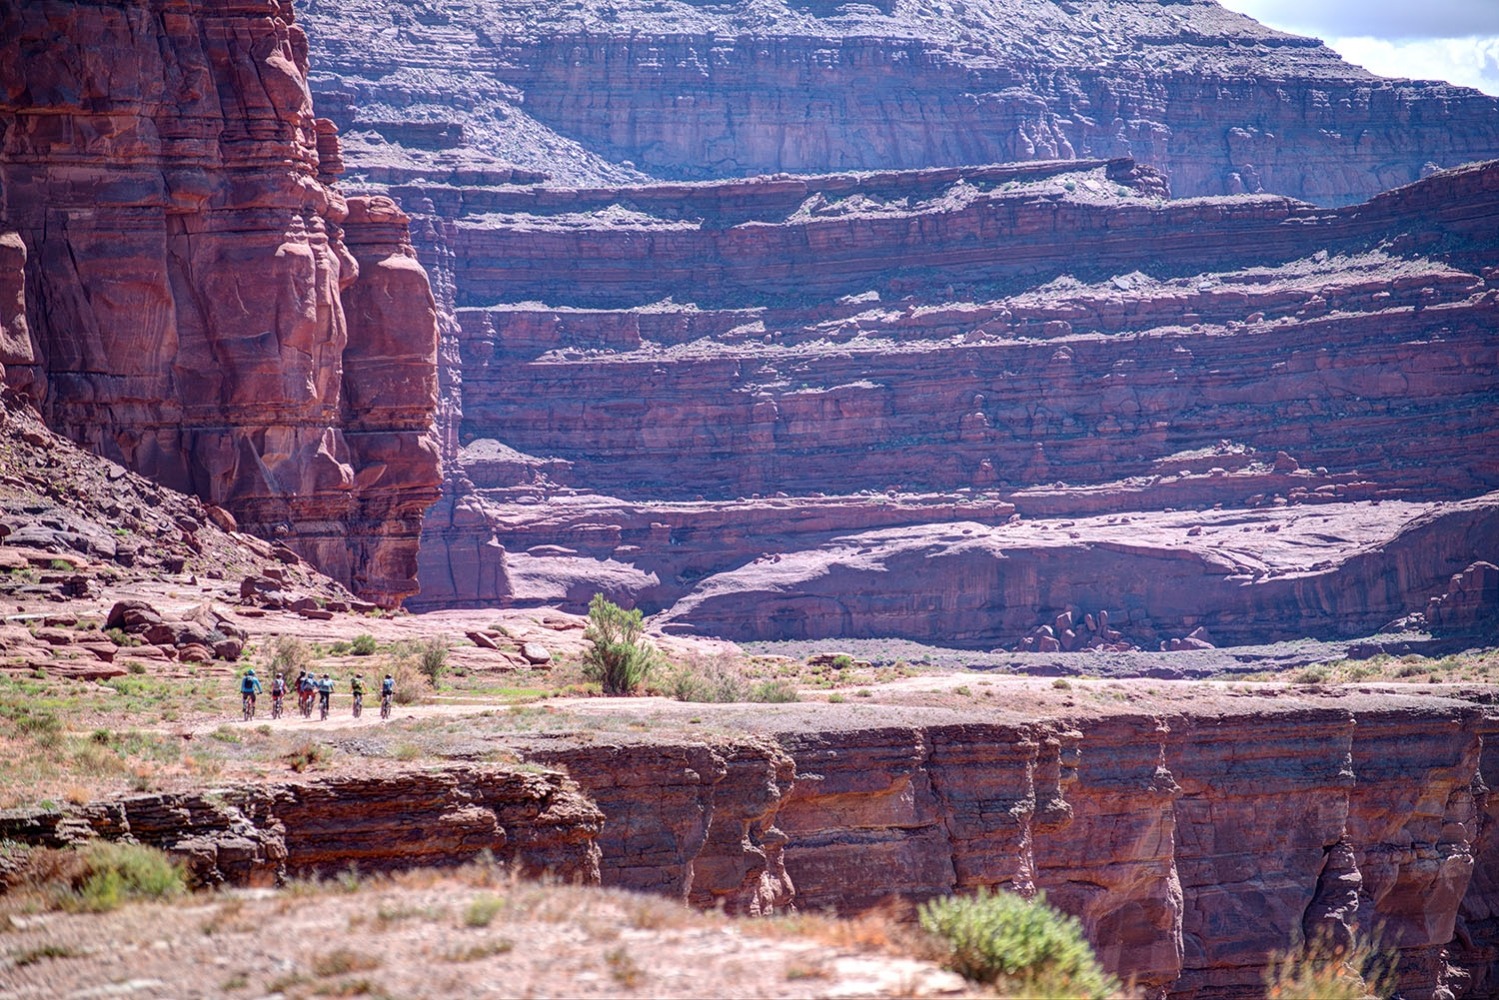 Canyonlands-National-Park-Full-Day-Guided-Mtb-Tour-Group-Into-Canyon-1